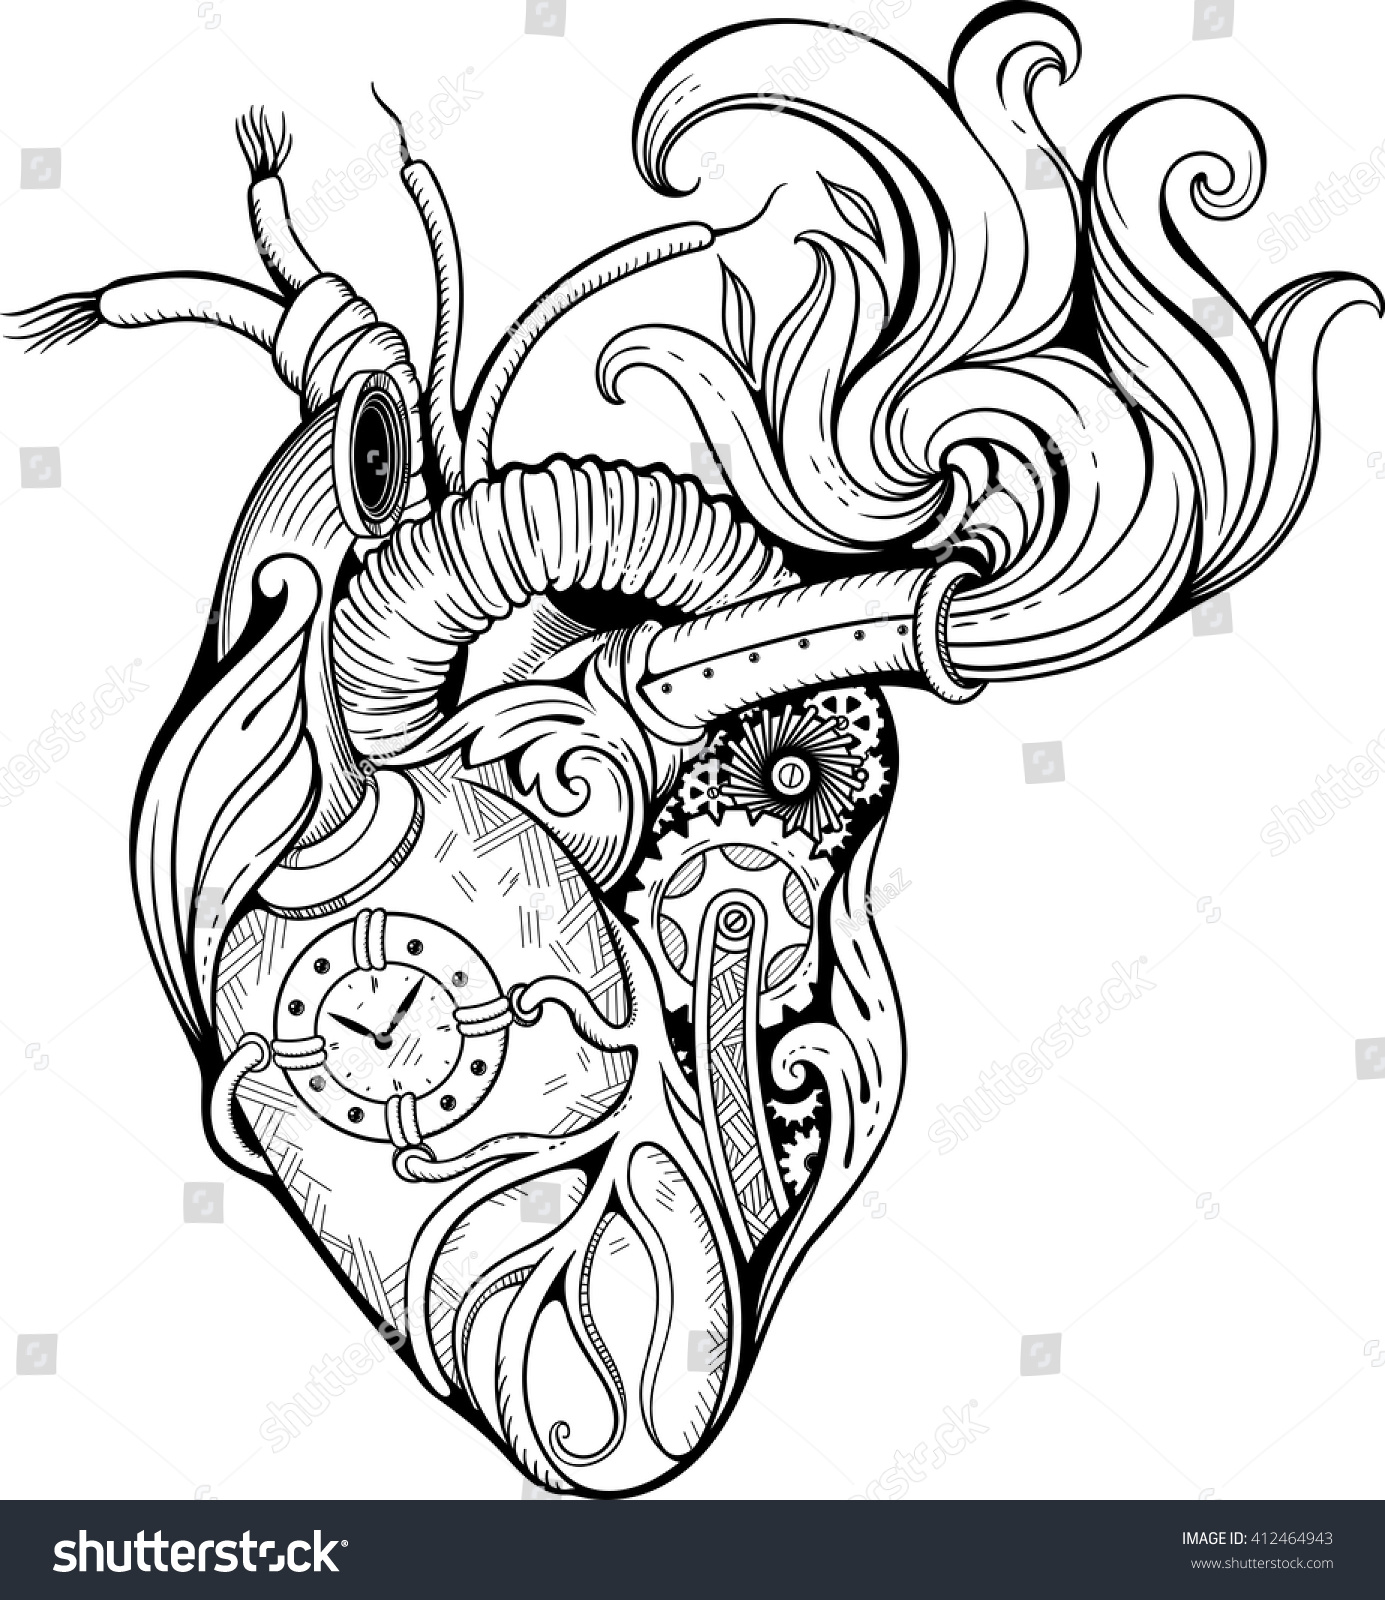 image heart ste unk style black white stock vector royalty free  image of heart in ste unk style black and white